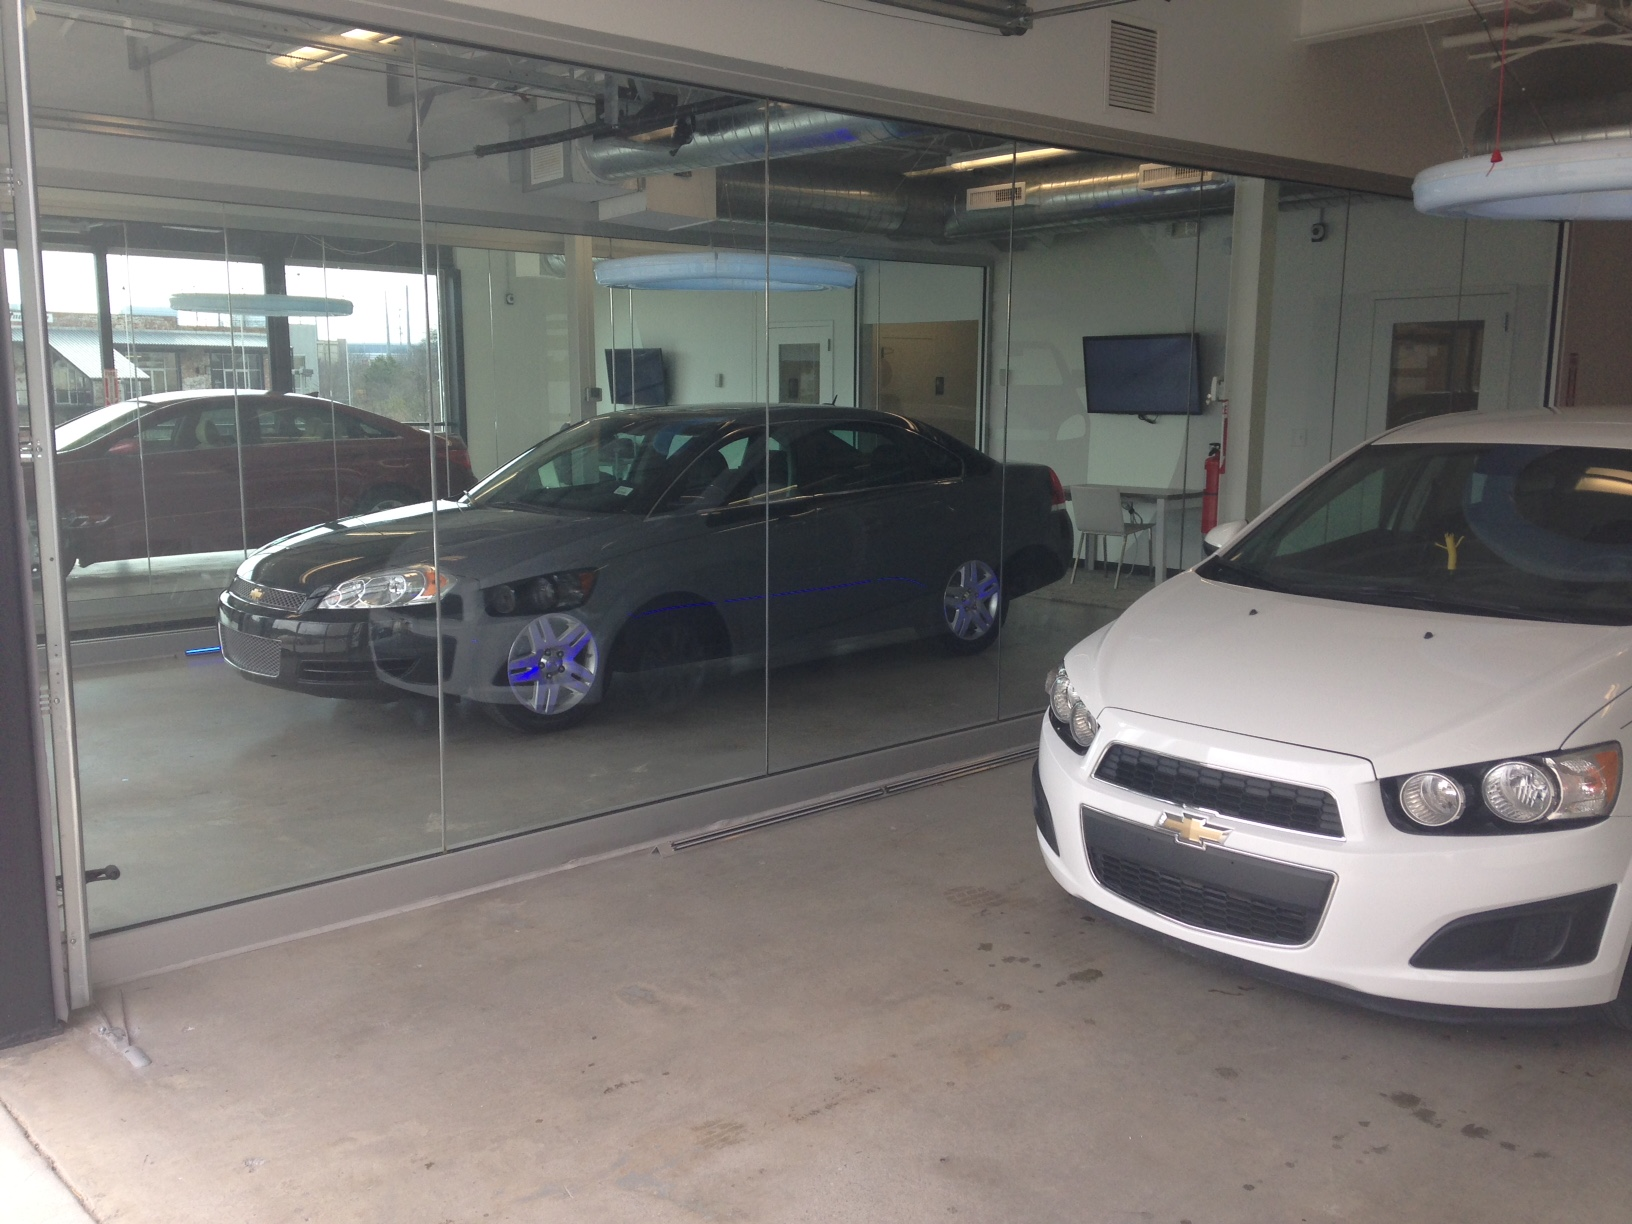 My Carvana Review: The Online Vending Machine For Buying Used Cars